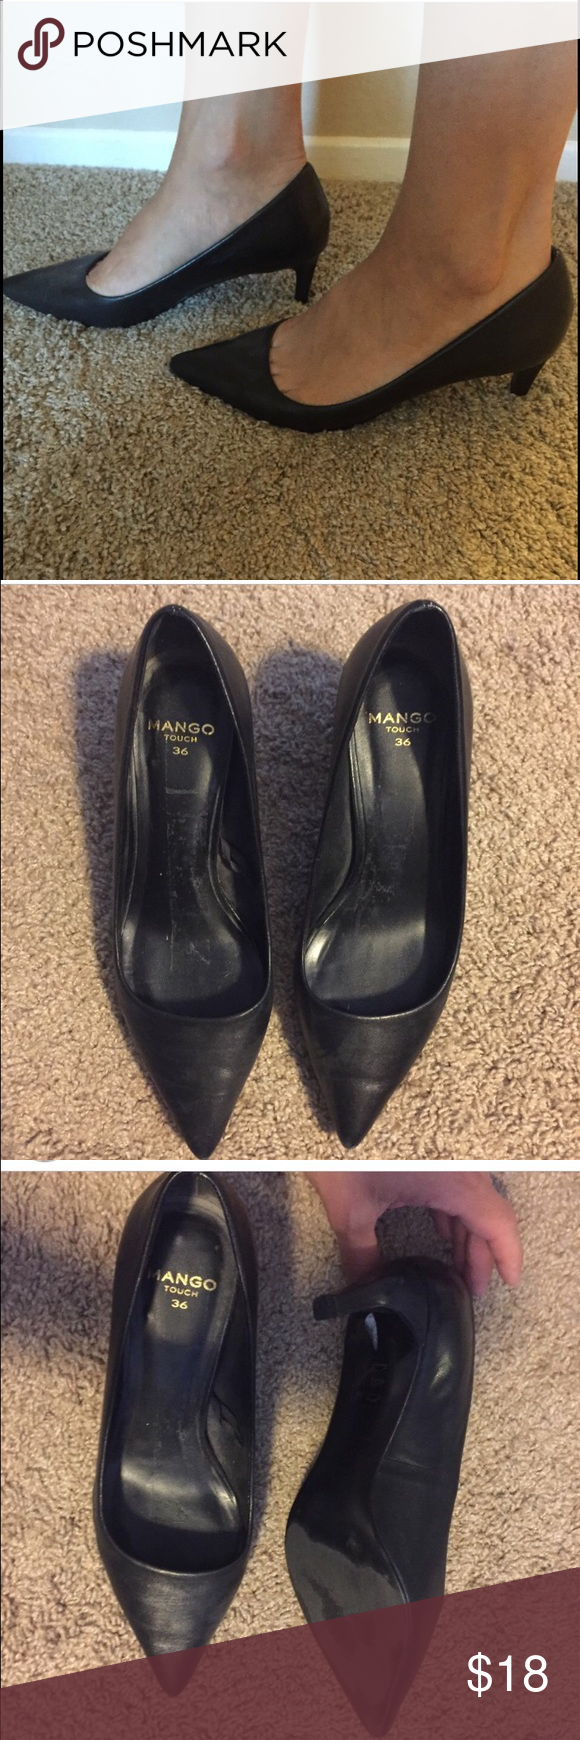 ✅Black Mango kitten heels✅ in amazing condition Mango kitten heels. Purchased in London and worn a few times. They are in great condition but too big for me as I wear 5.5. Mango Shoes Heels